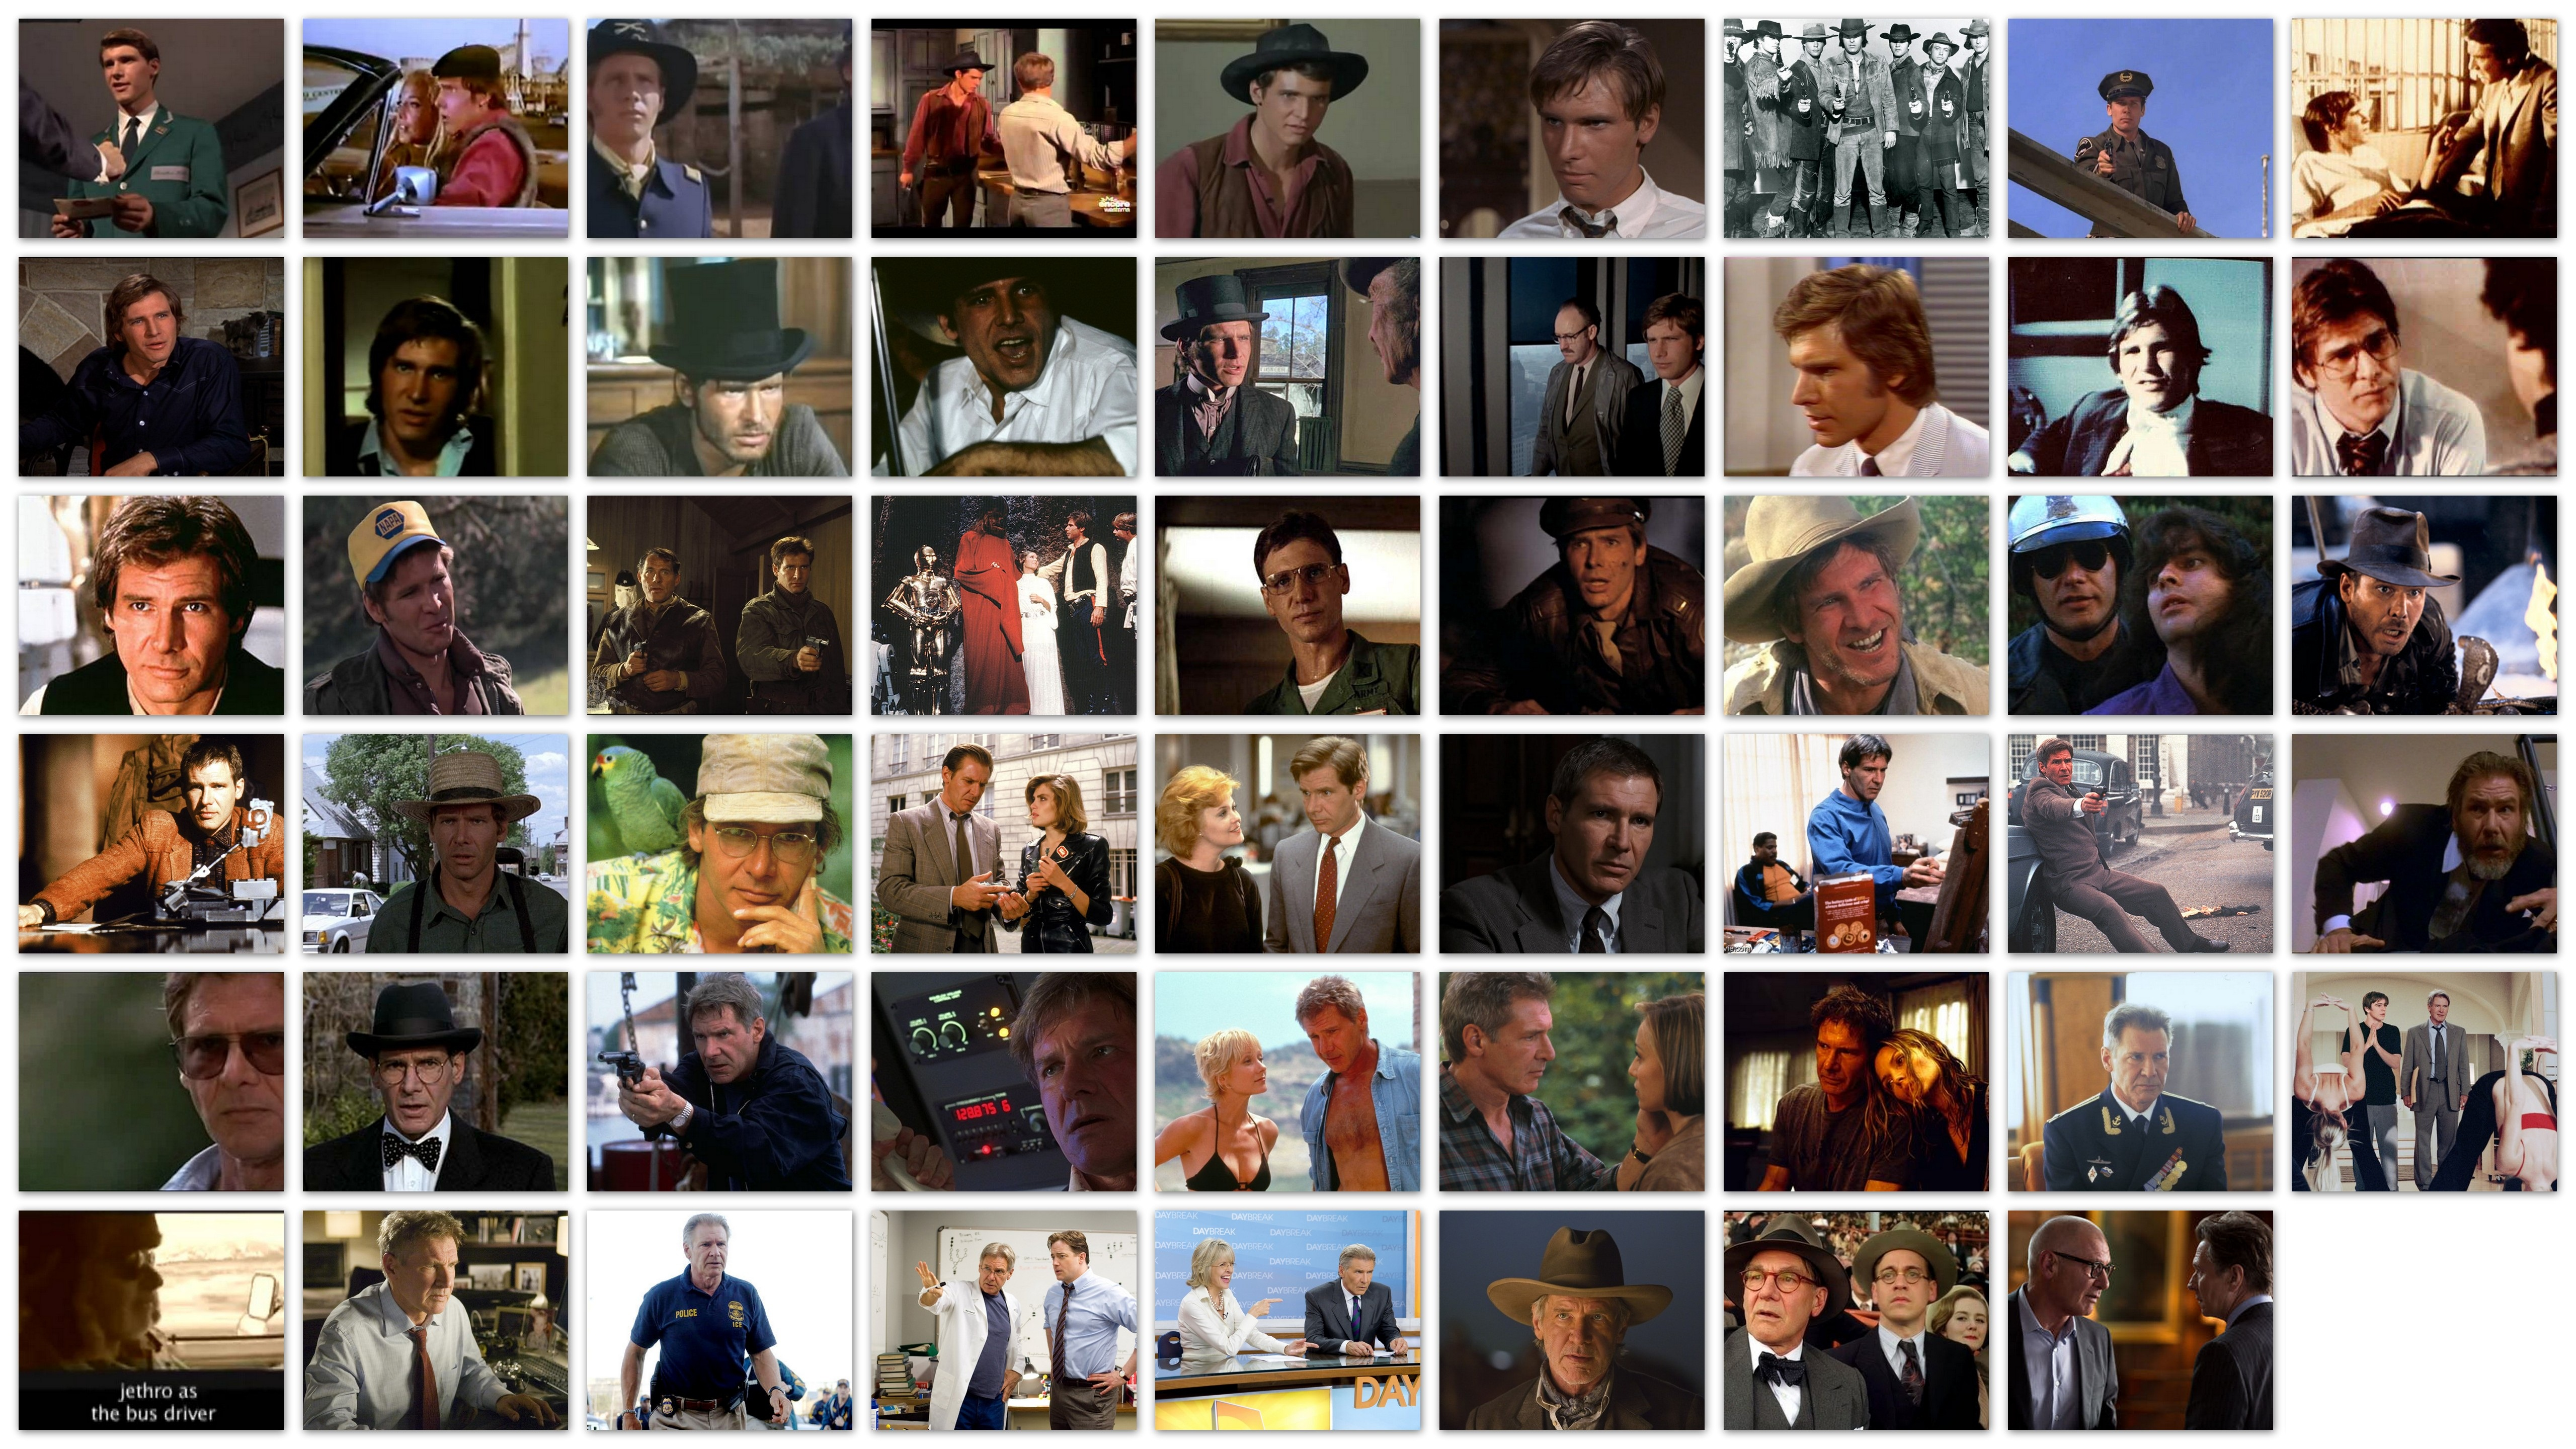 Overview of the roles of actor Harrison Ford in movies